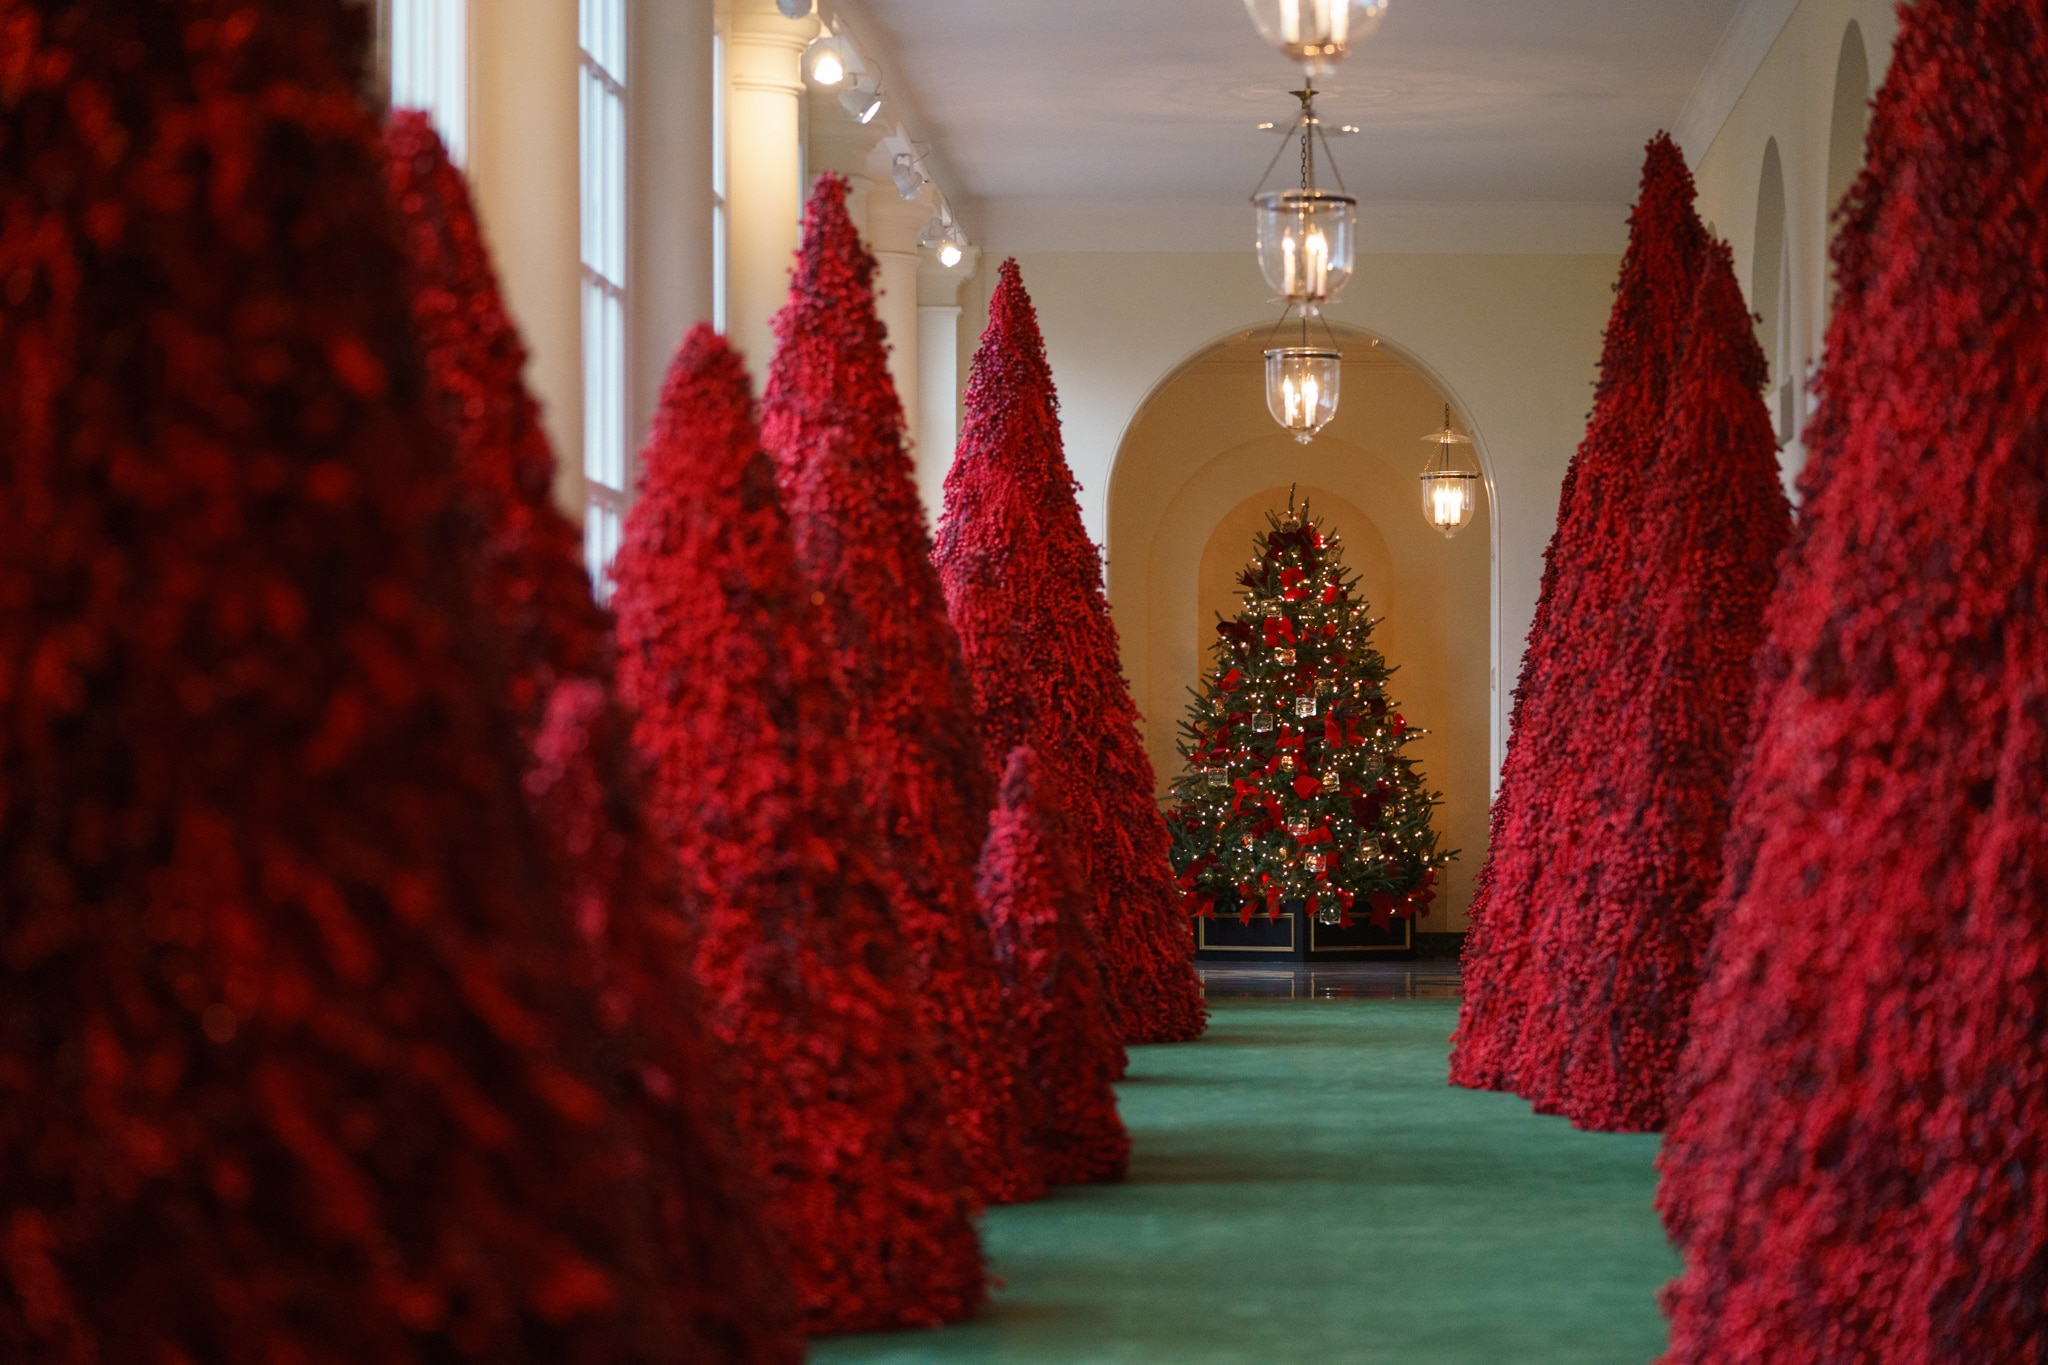 Red Christmas trees lining colonnade in the White House (© Carolyn Kaster/AP Images)